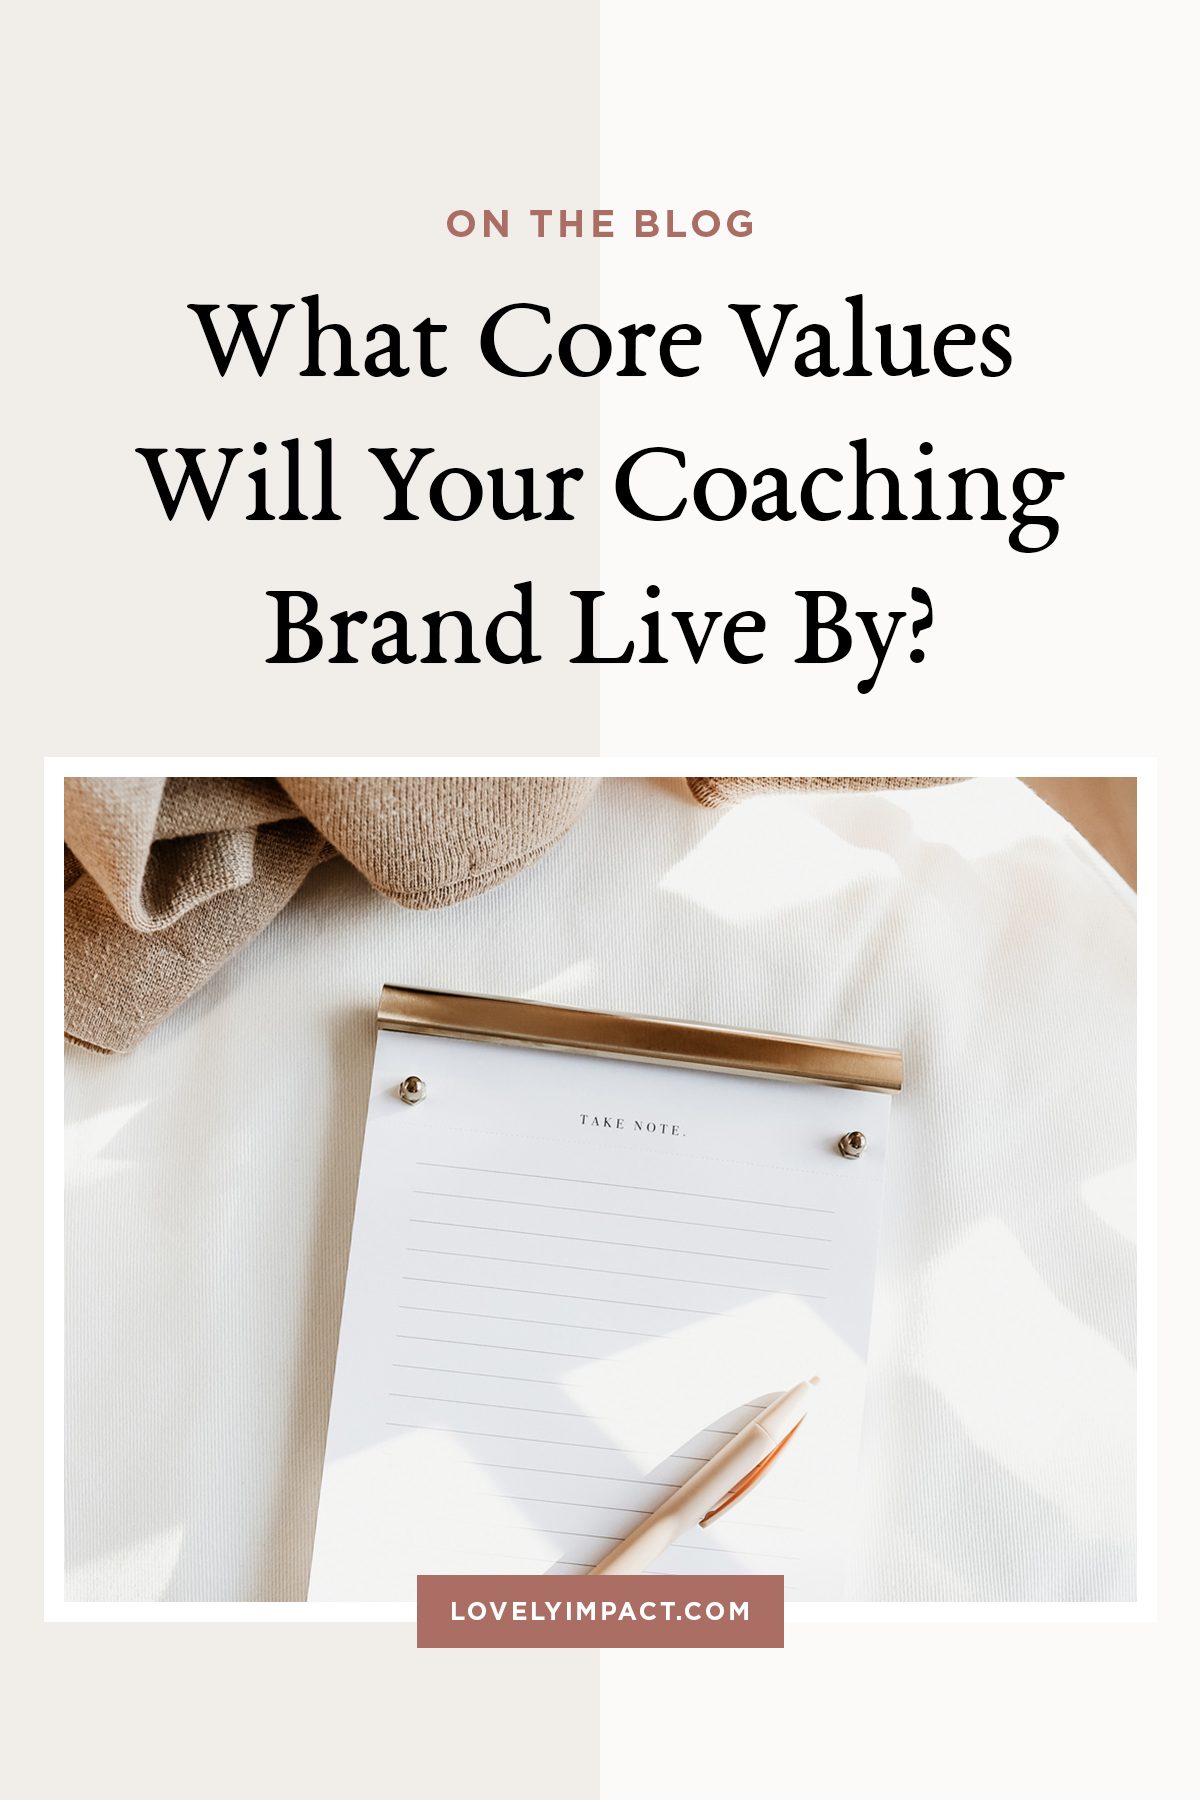 What Core Values Will Your Coaching Brand Live By?